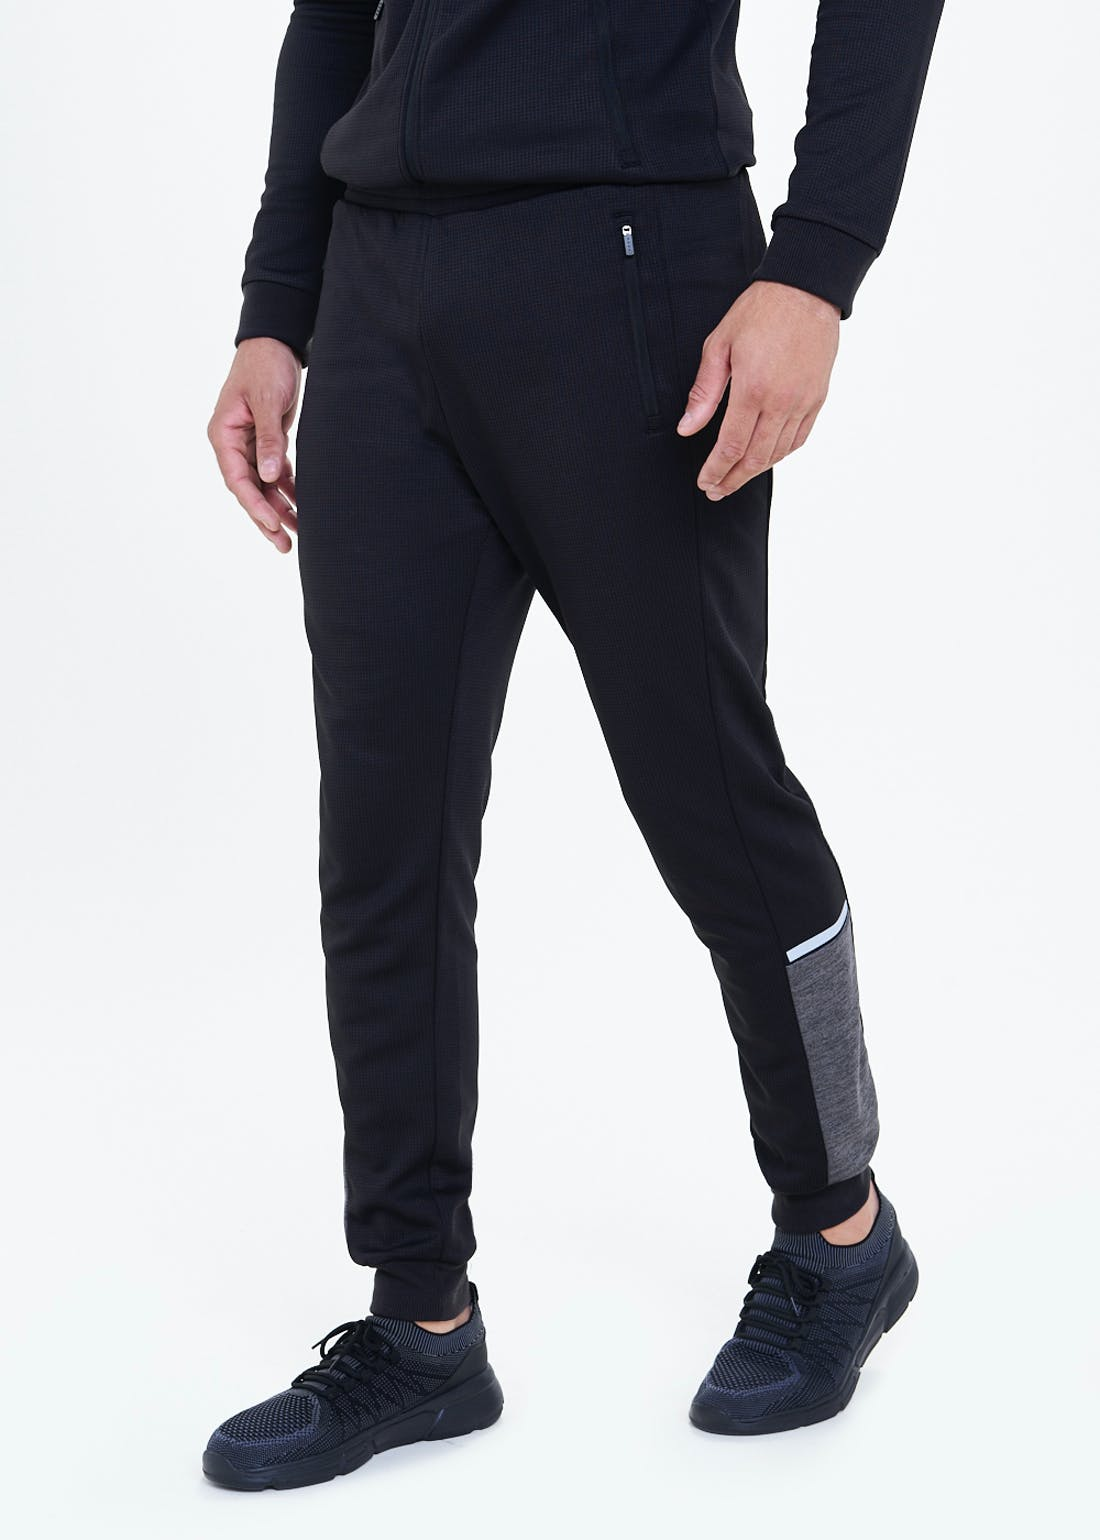 Souluxe Black Two Tone Joggers